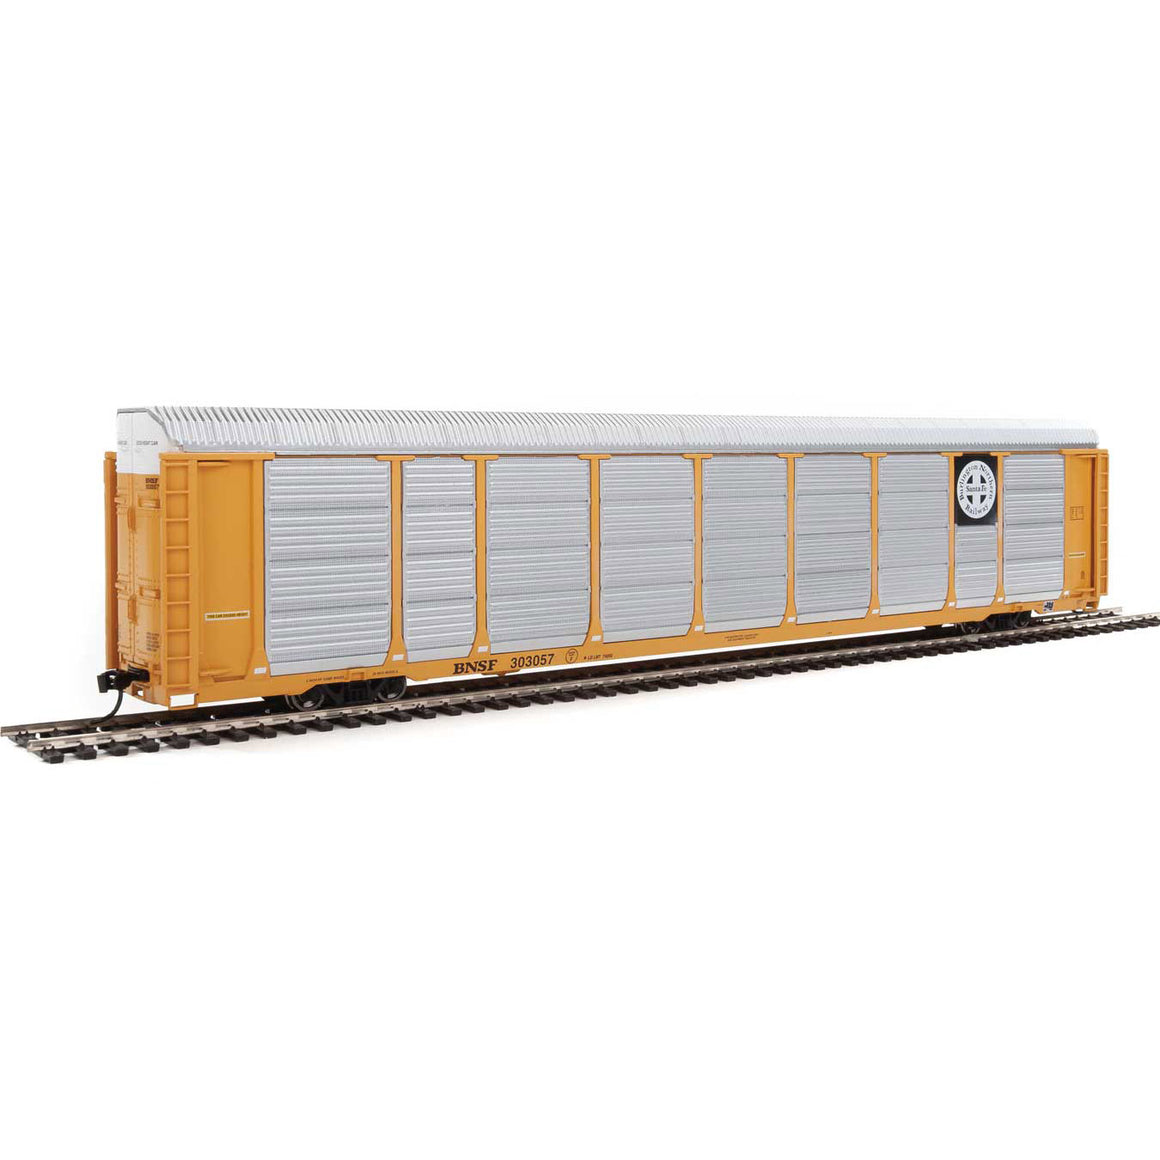 HO Scale: 89' Thrall Tri-Level Auto Carrier - BNSF